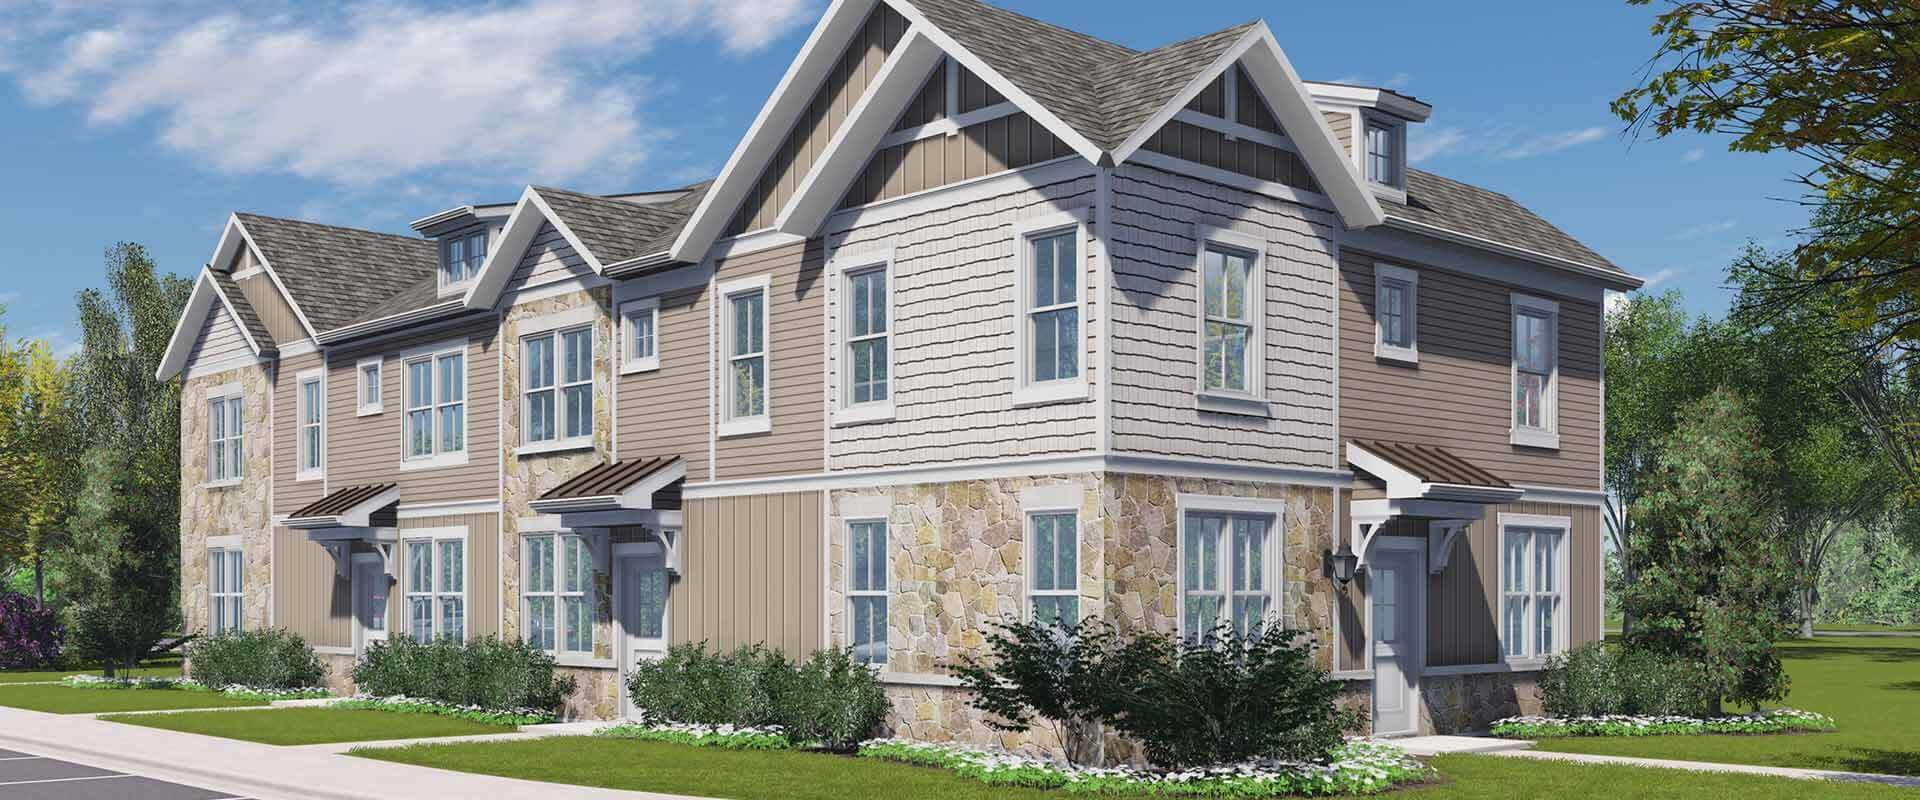 Charlesworth_Hubble_Homes_New_Homes_Boise_0000_C1 rev1.jpg